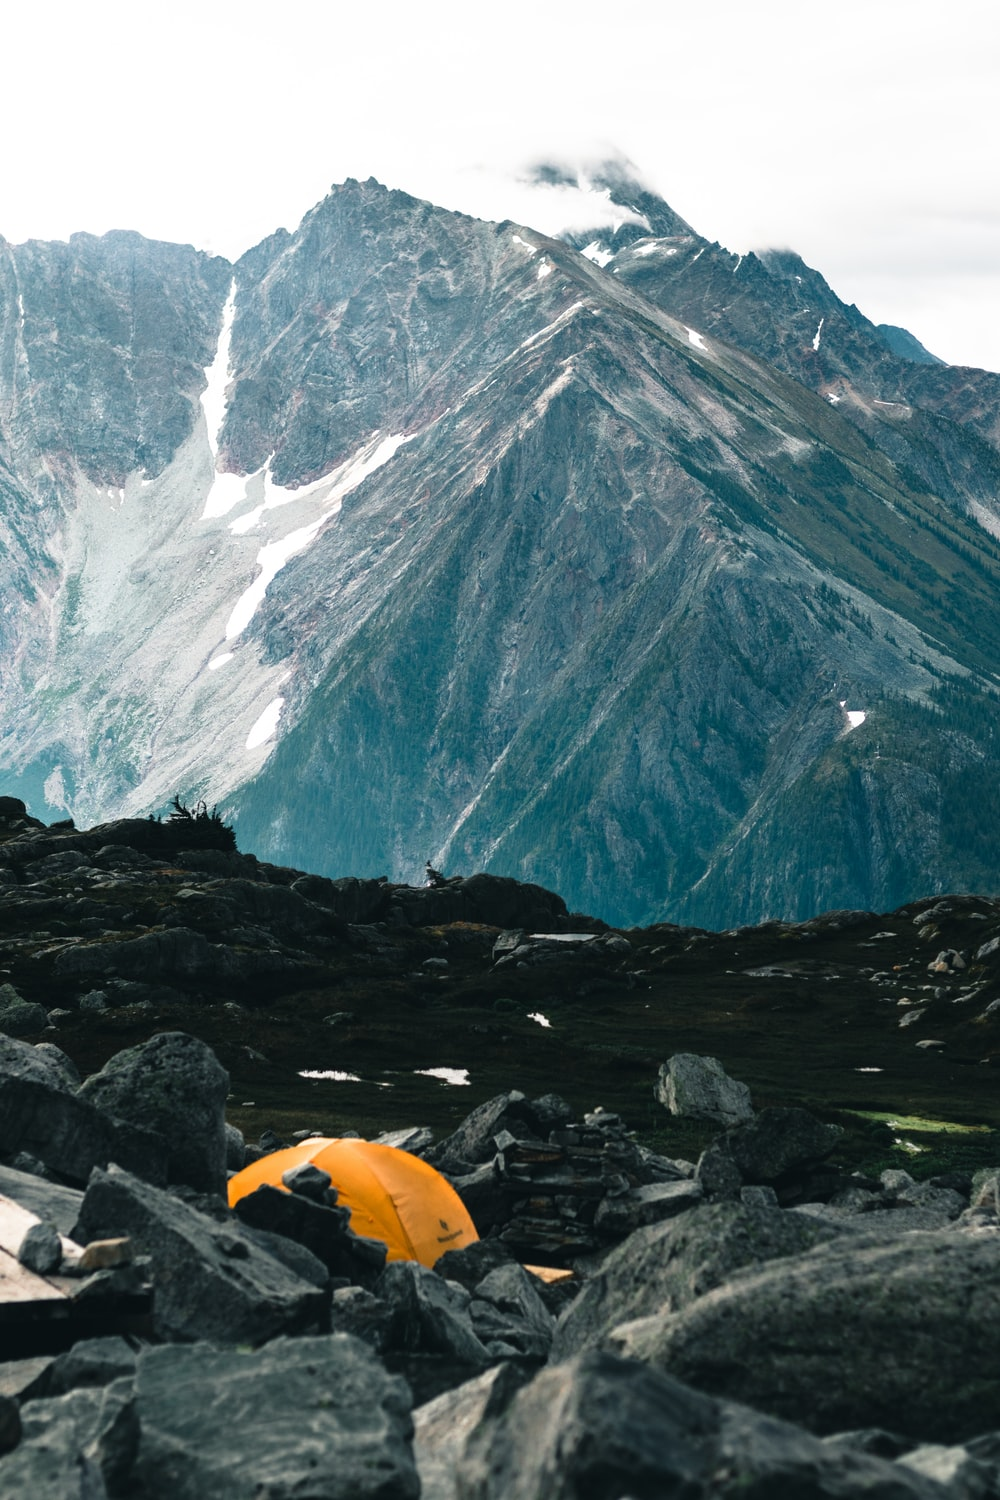 yellow dome tent on rocky ground near mountain